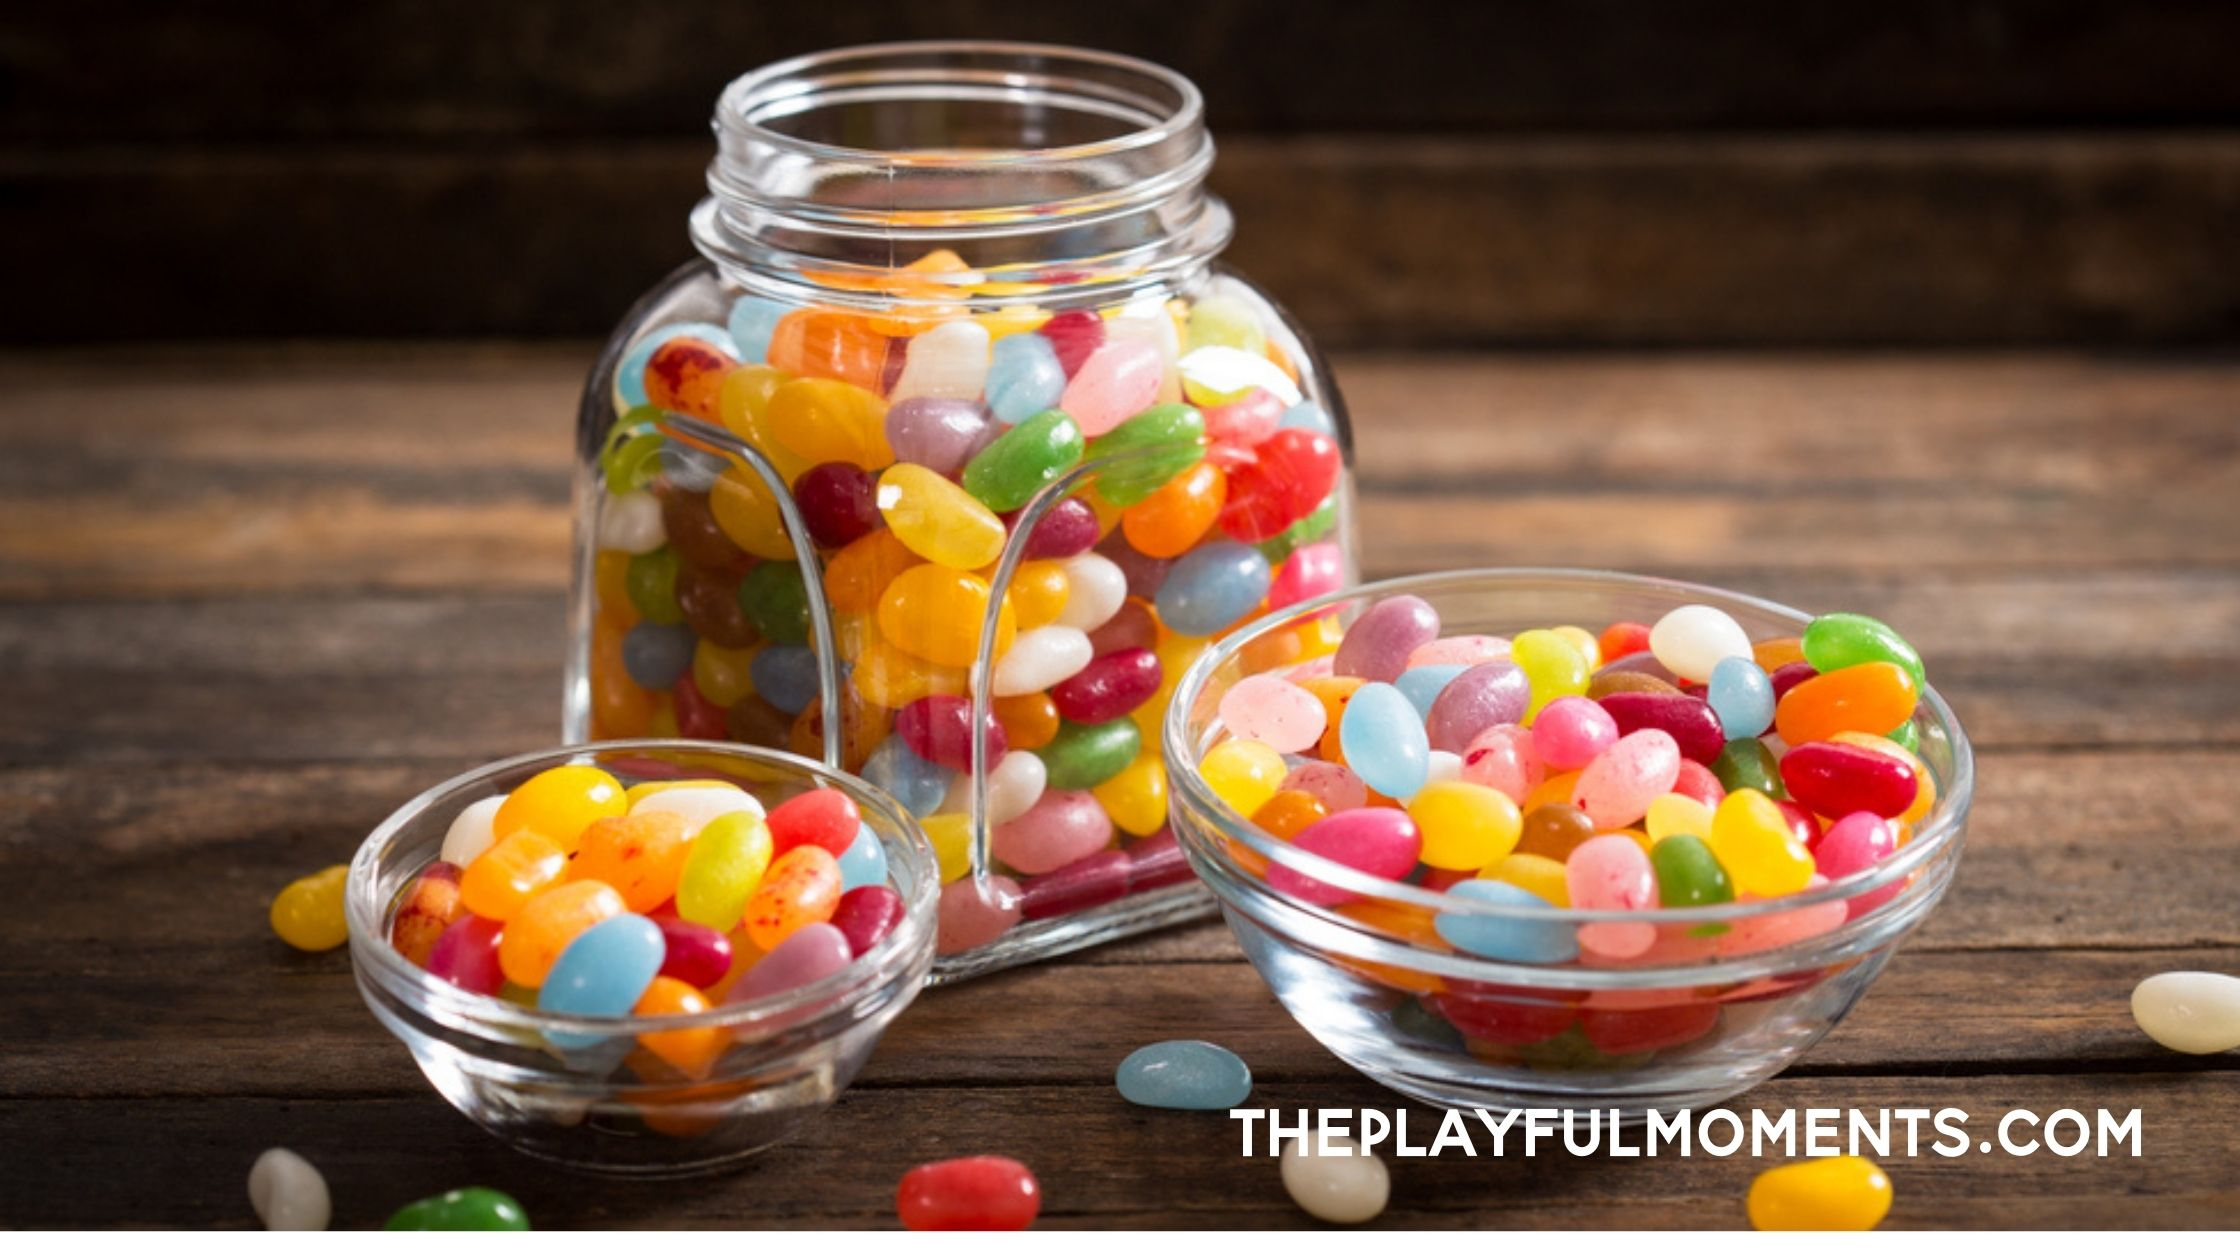 Jelly beans in glass bowls and jar